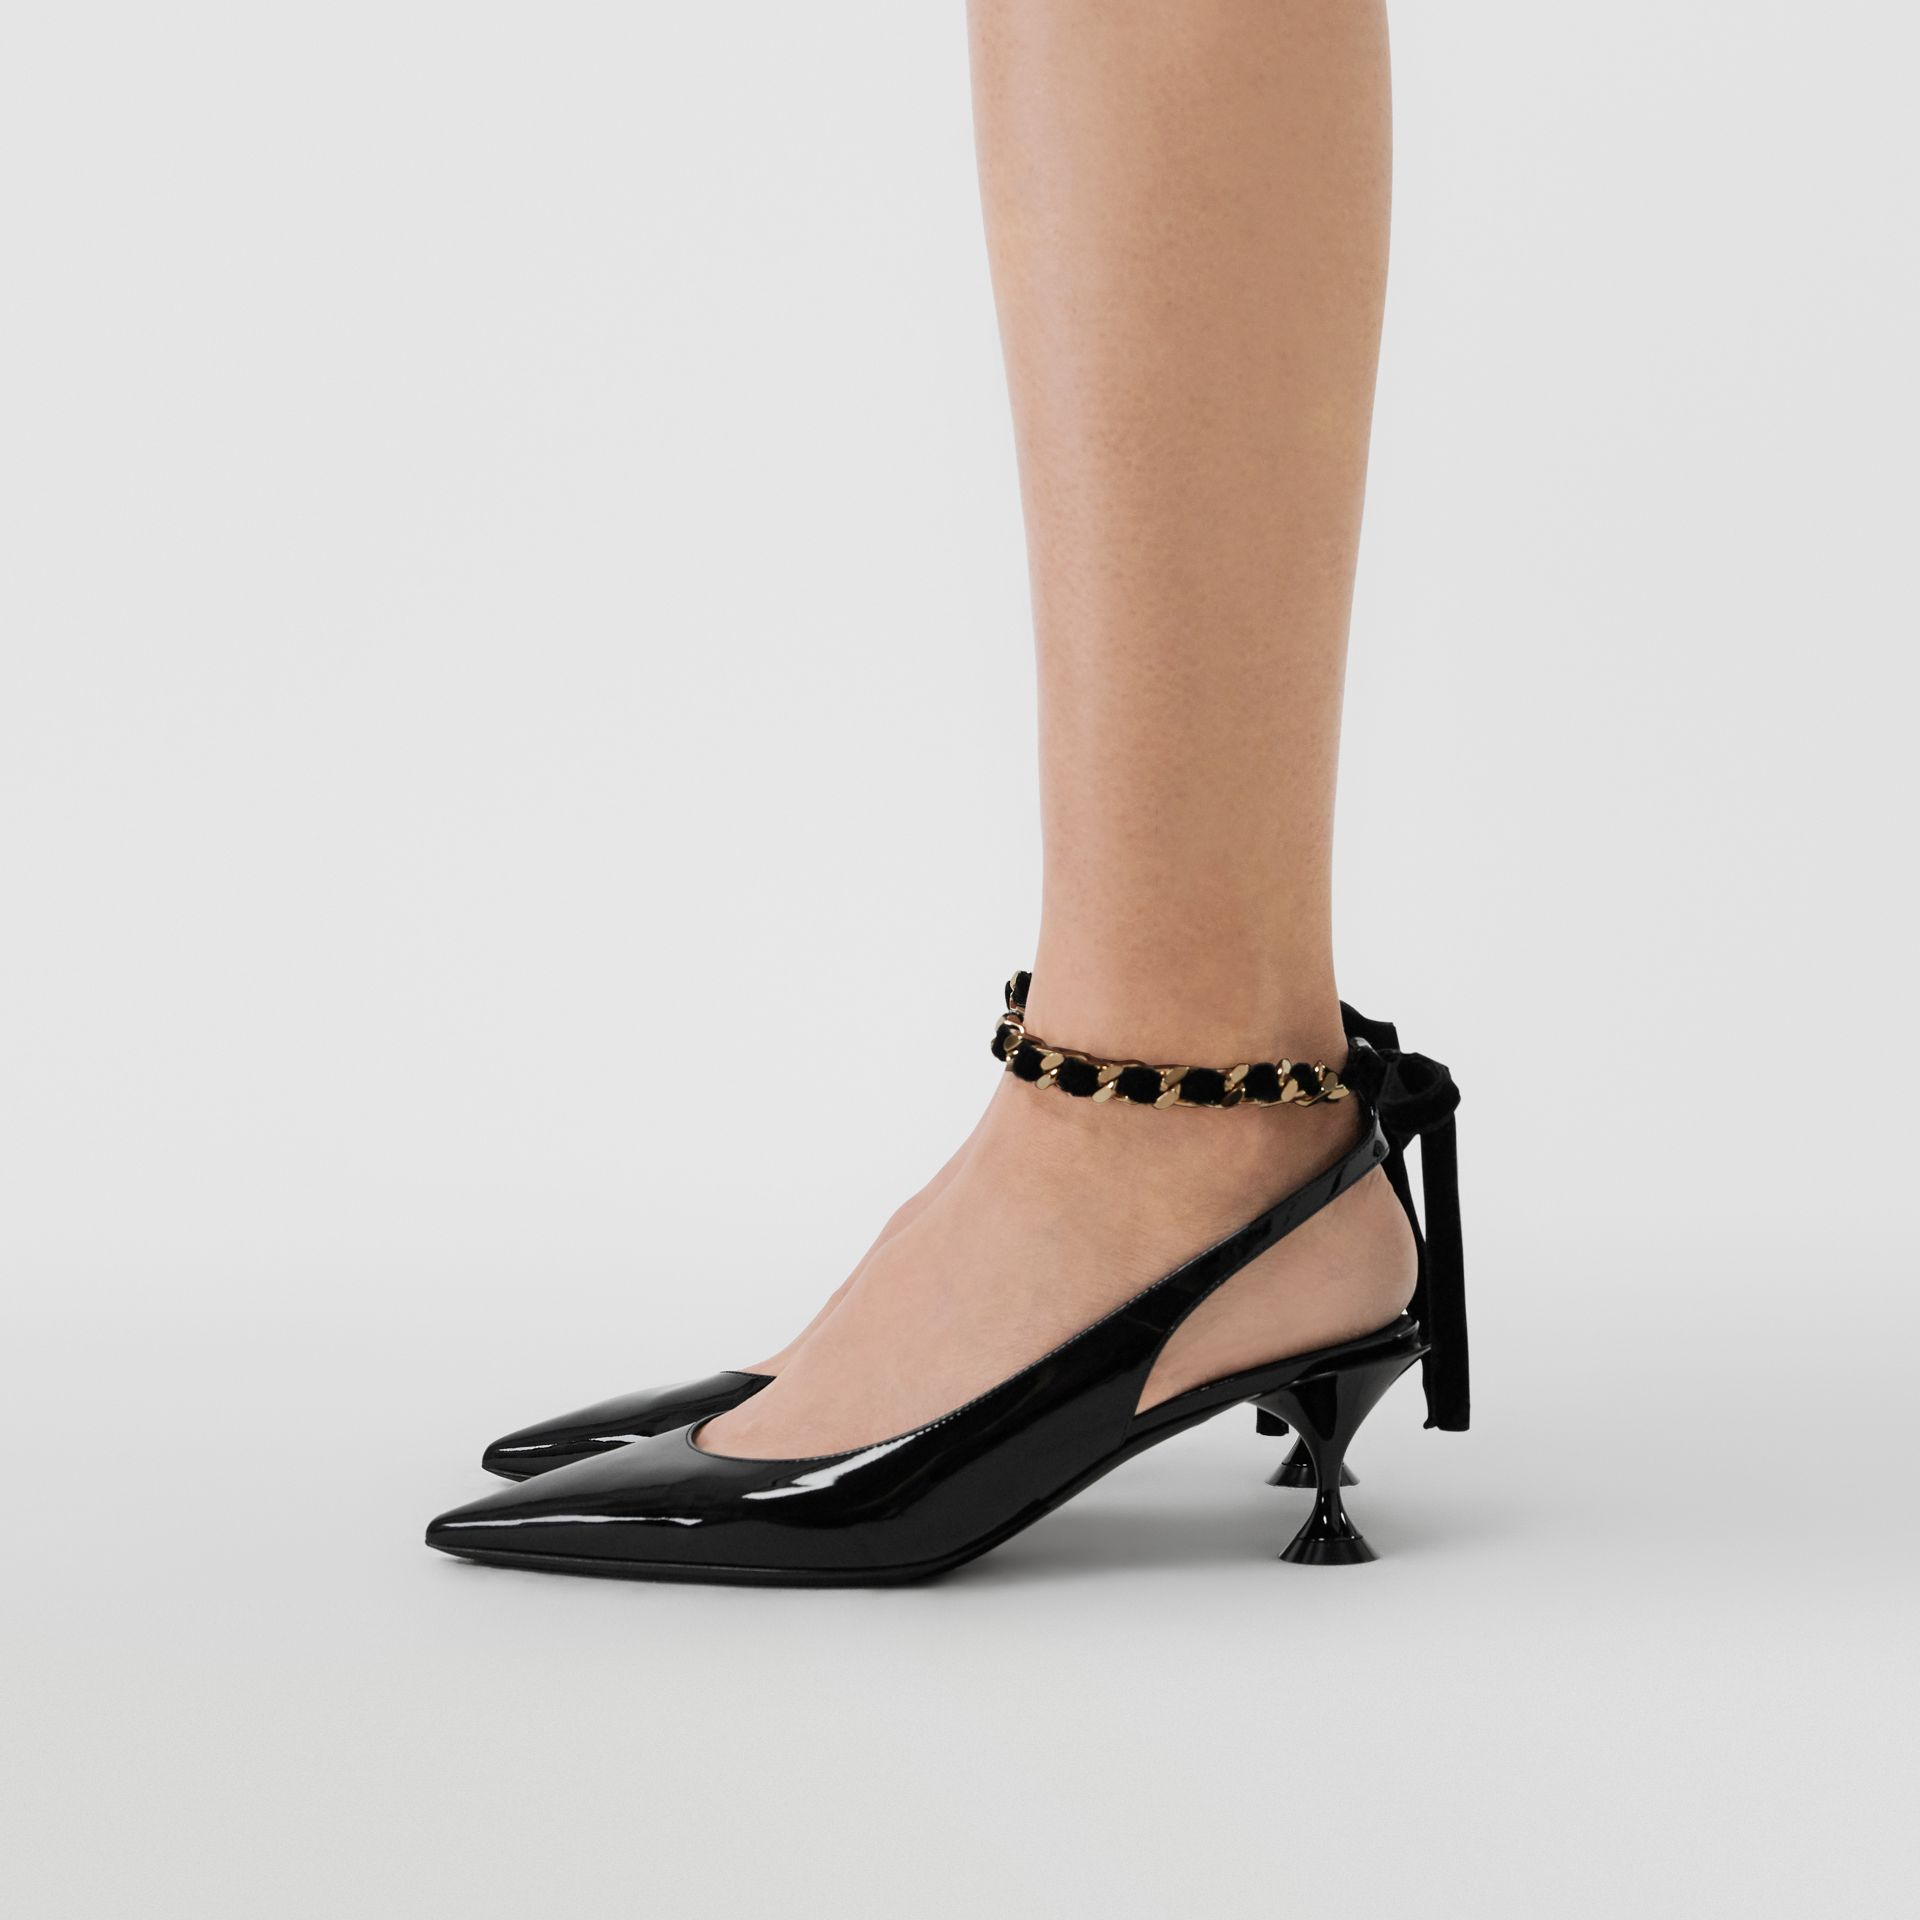 Chain Detail Leather Slingback Pumps in Black - Women | Burberry - gallery image 2